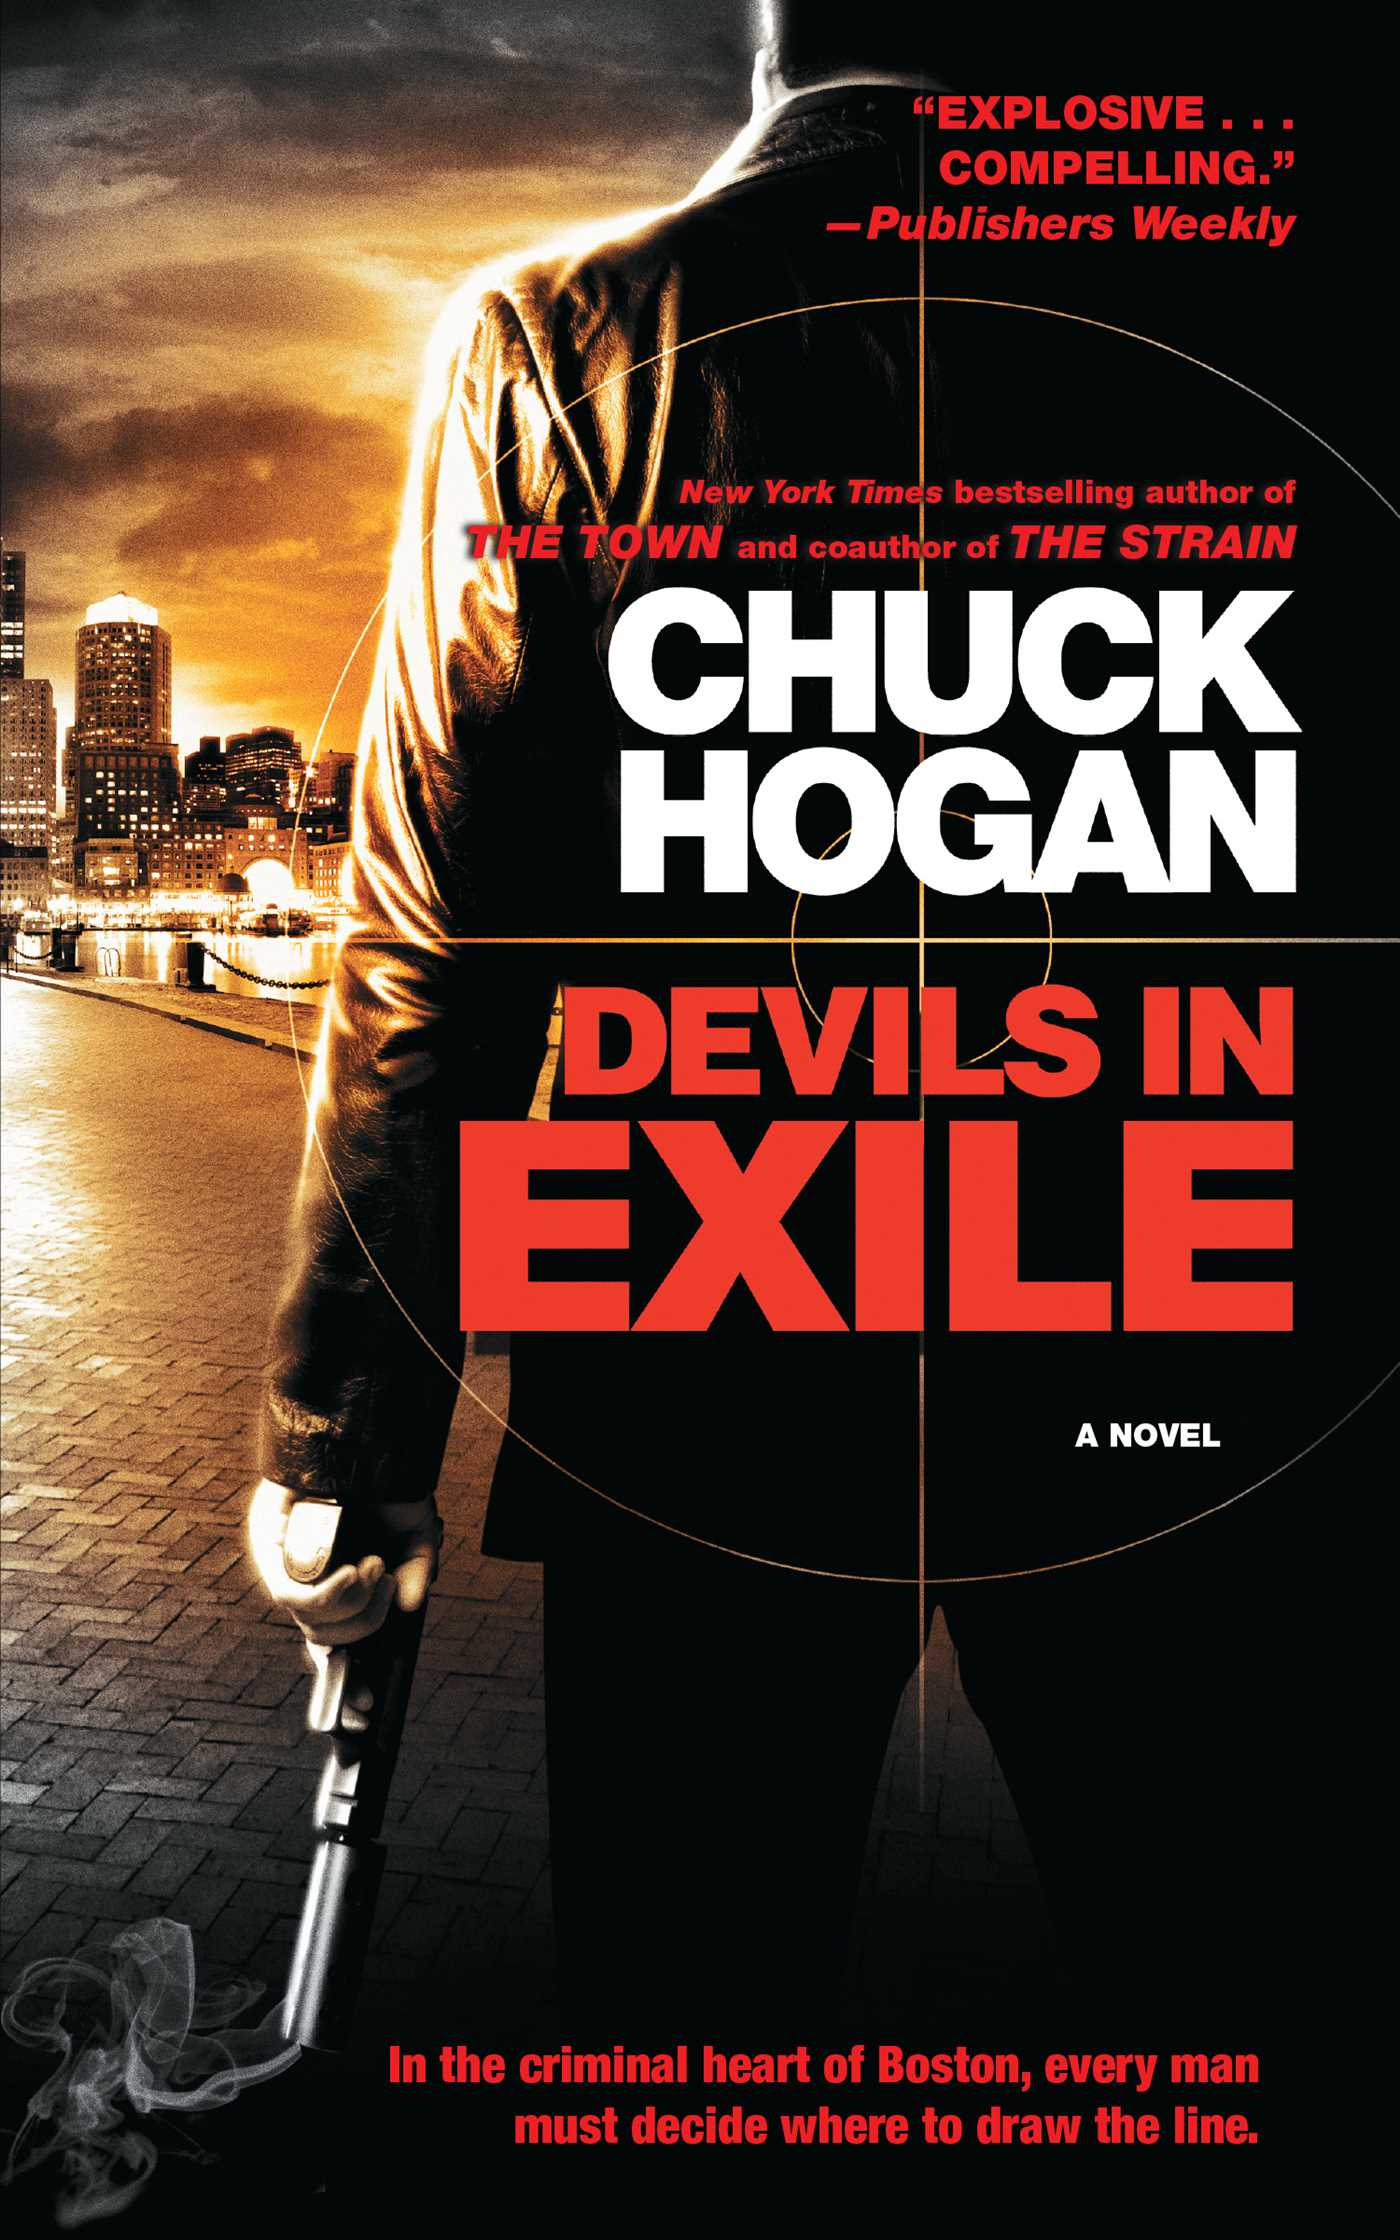 Devils in exile 9781416559238 hr